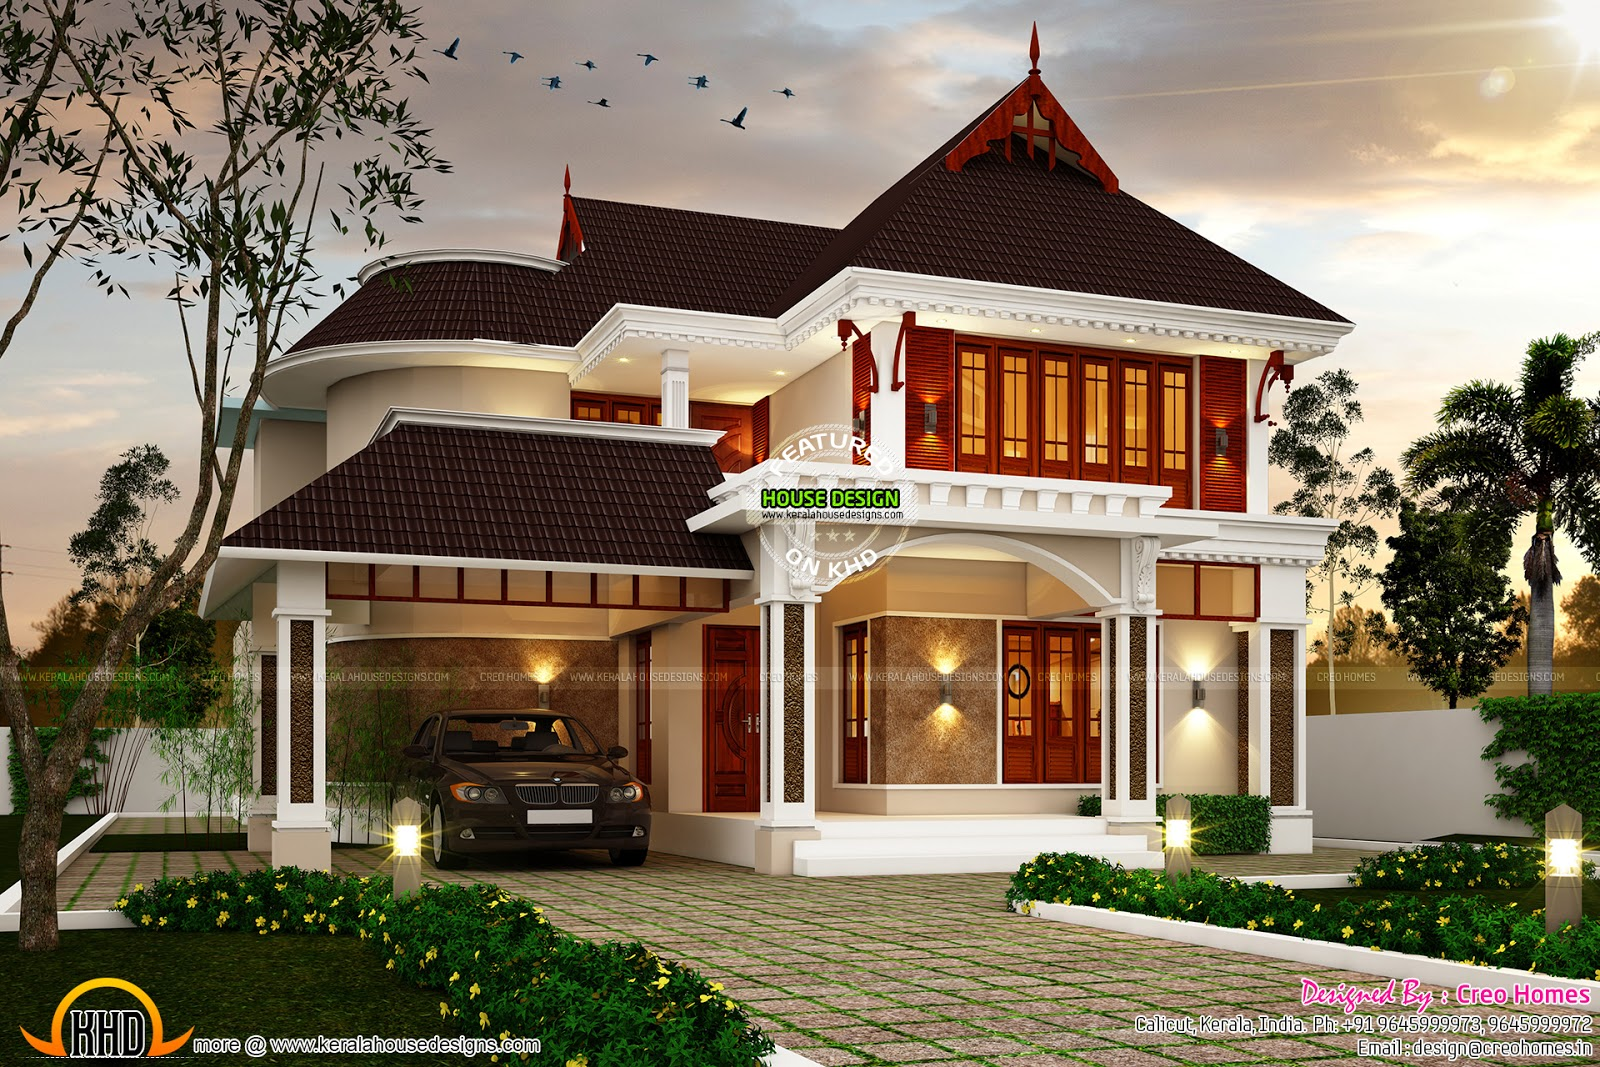 Superb dream house plan kerala home design and floor plans for Dream house plans